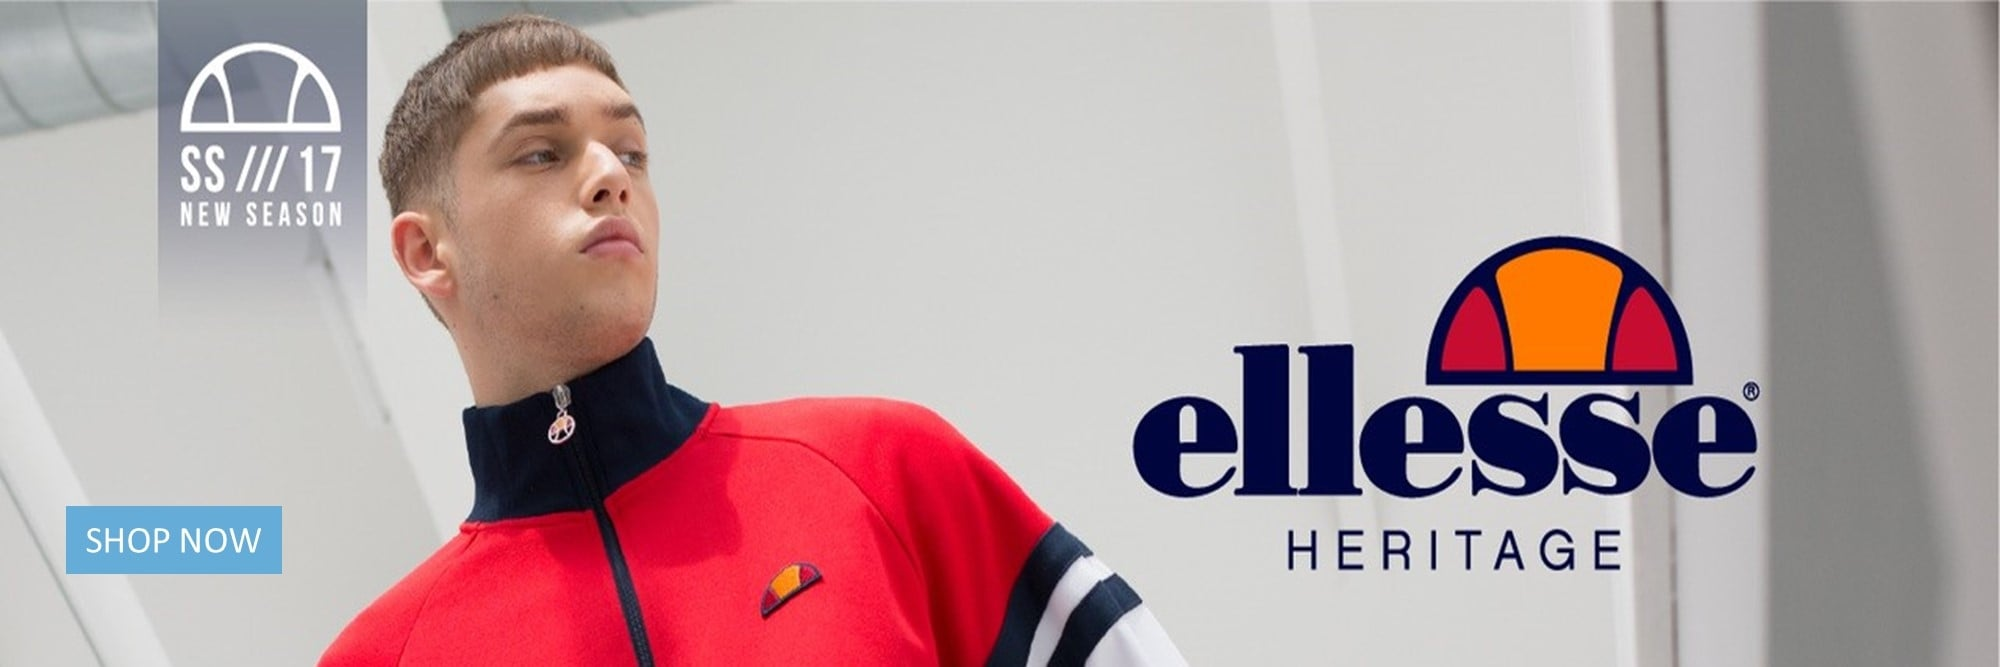 Ellesse New Collection - Shop Now